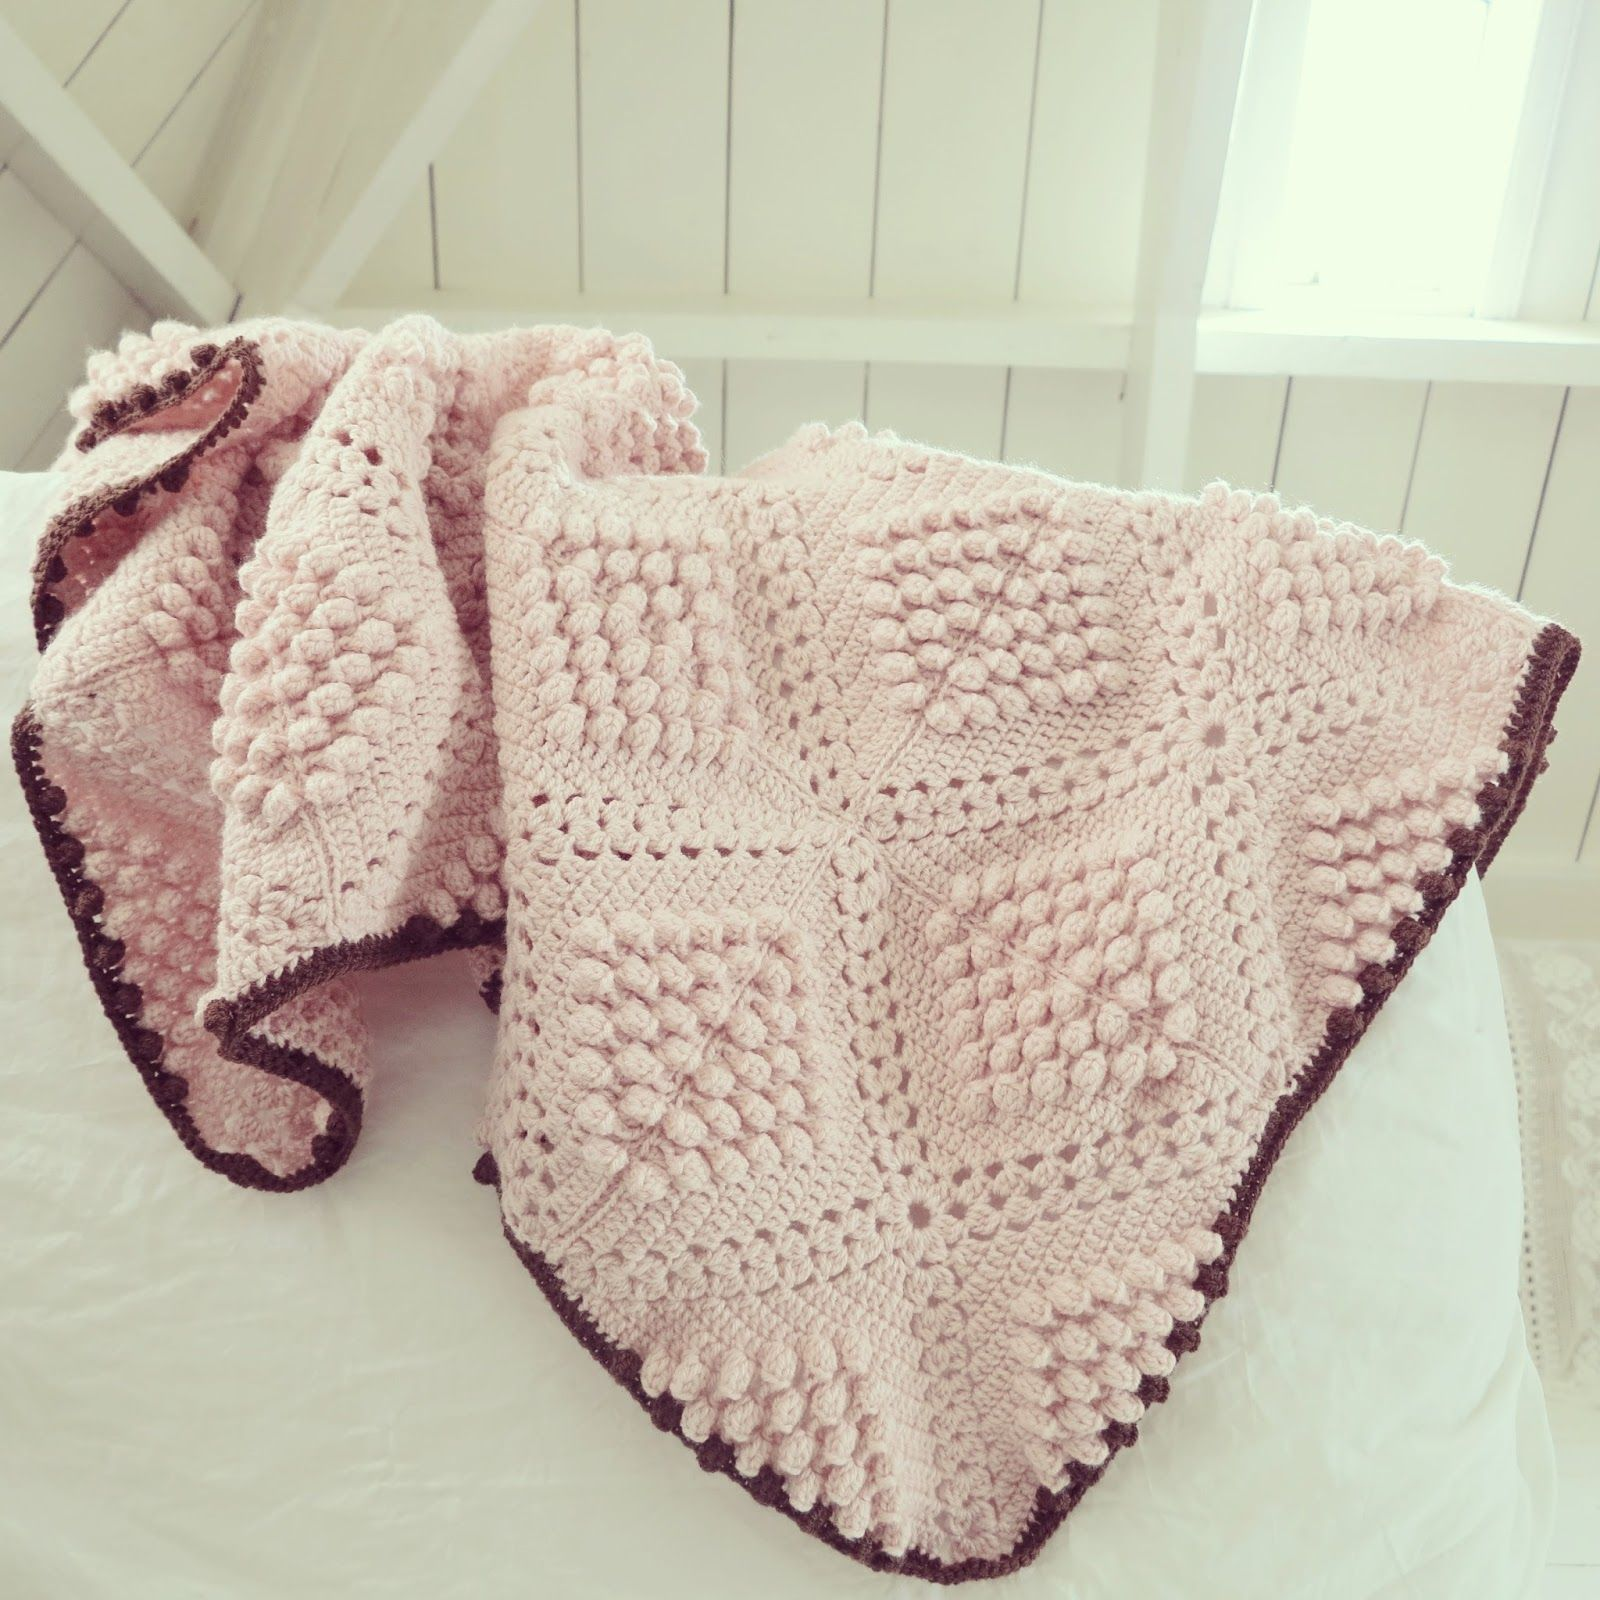 Knit Popcorn Stitch Baby Blanket : ByHaafner, crochet, popcorn, bobble stitch throw, blanket, powder pink, patte...